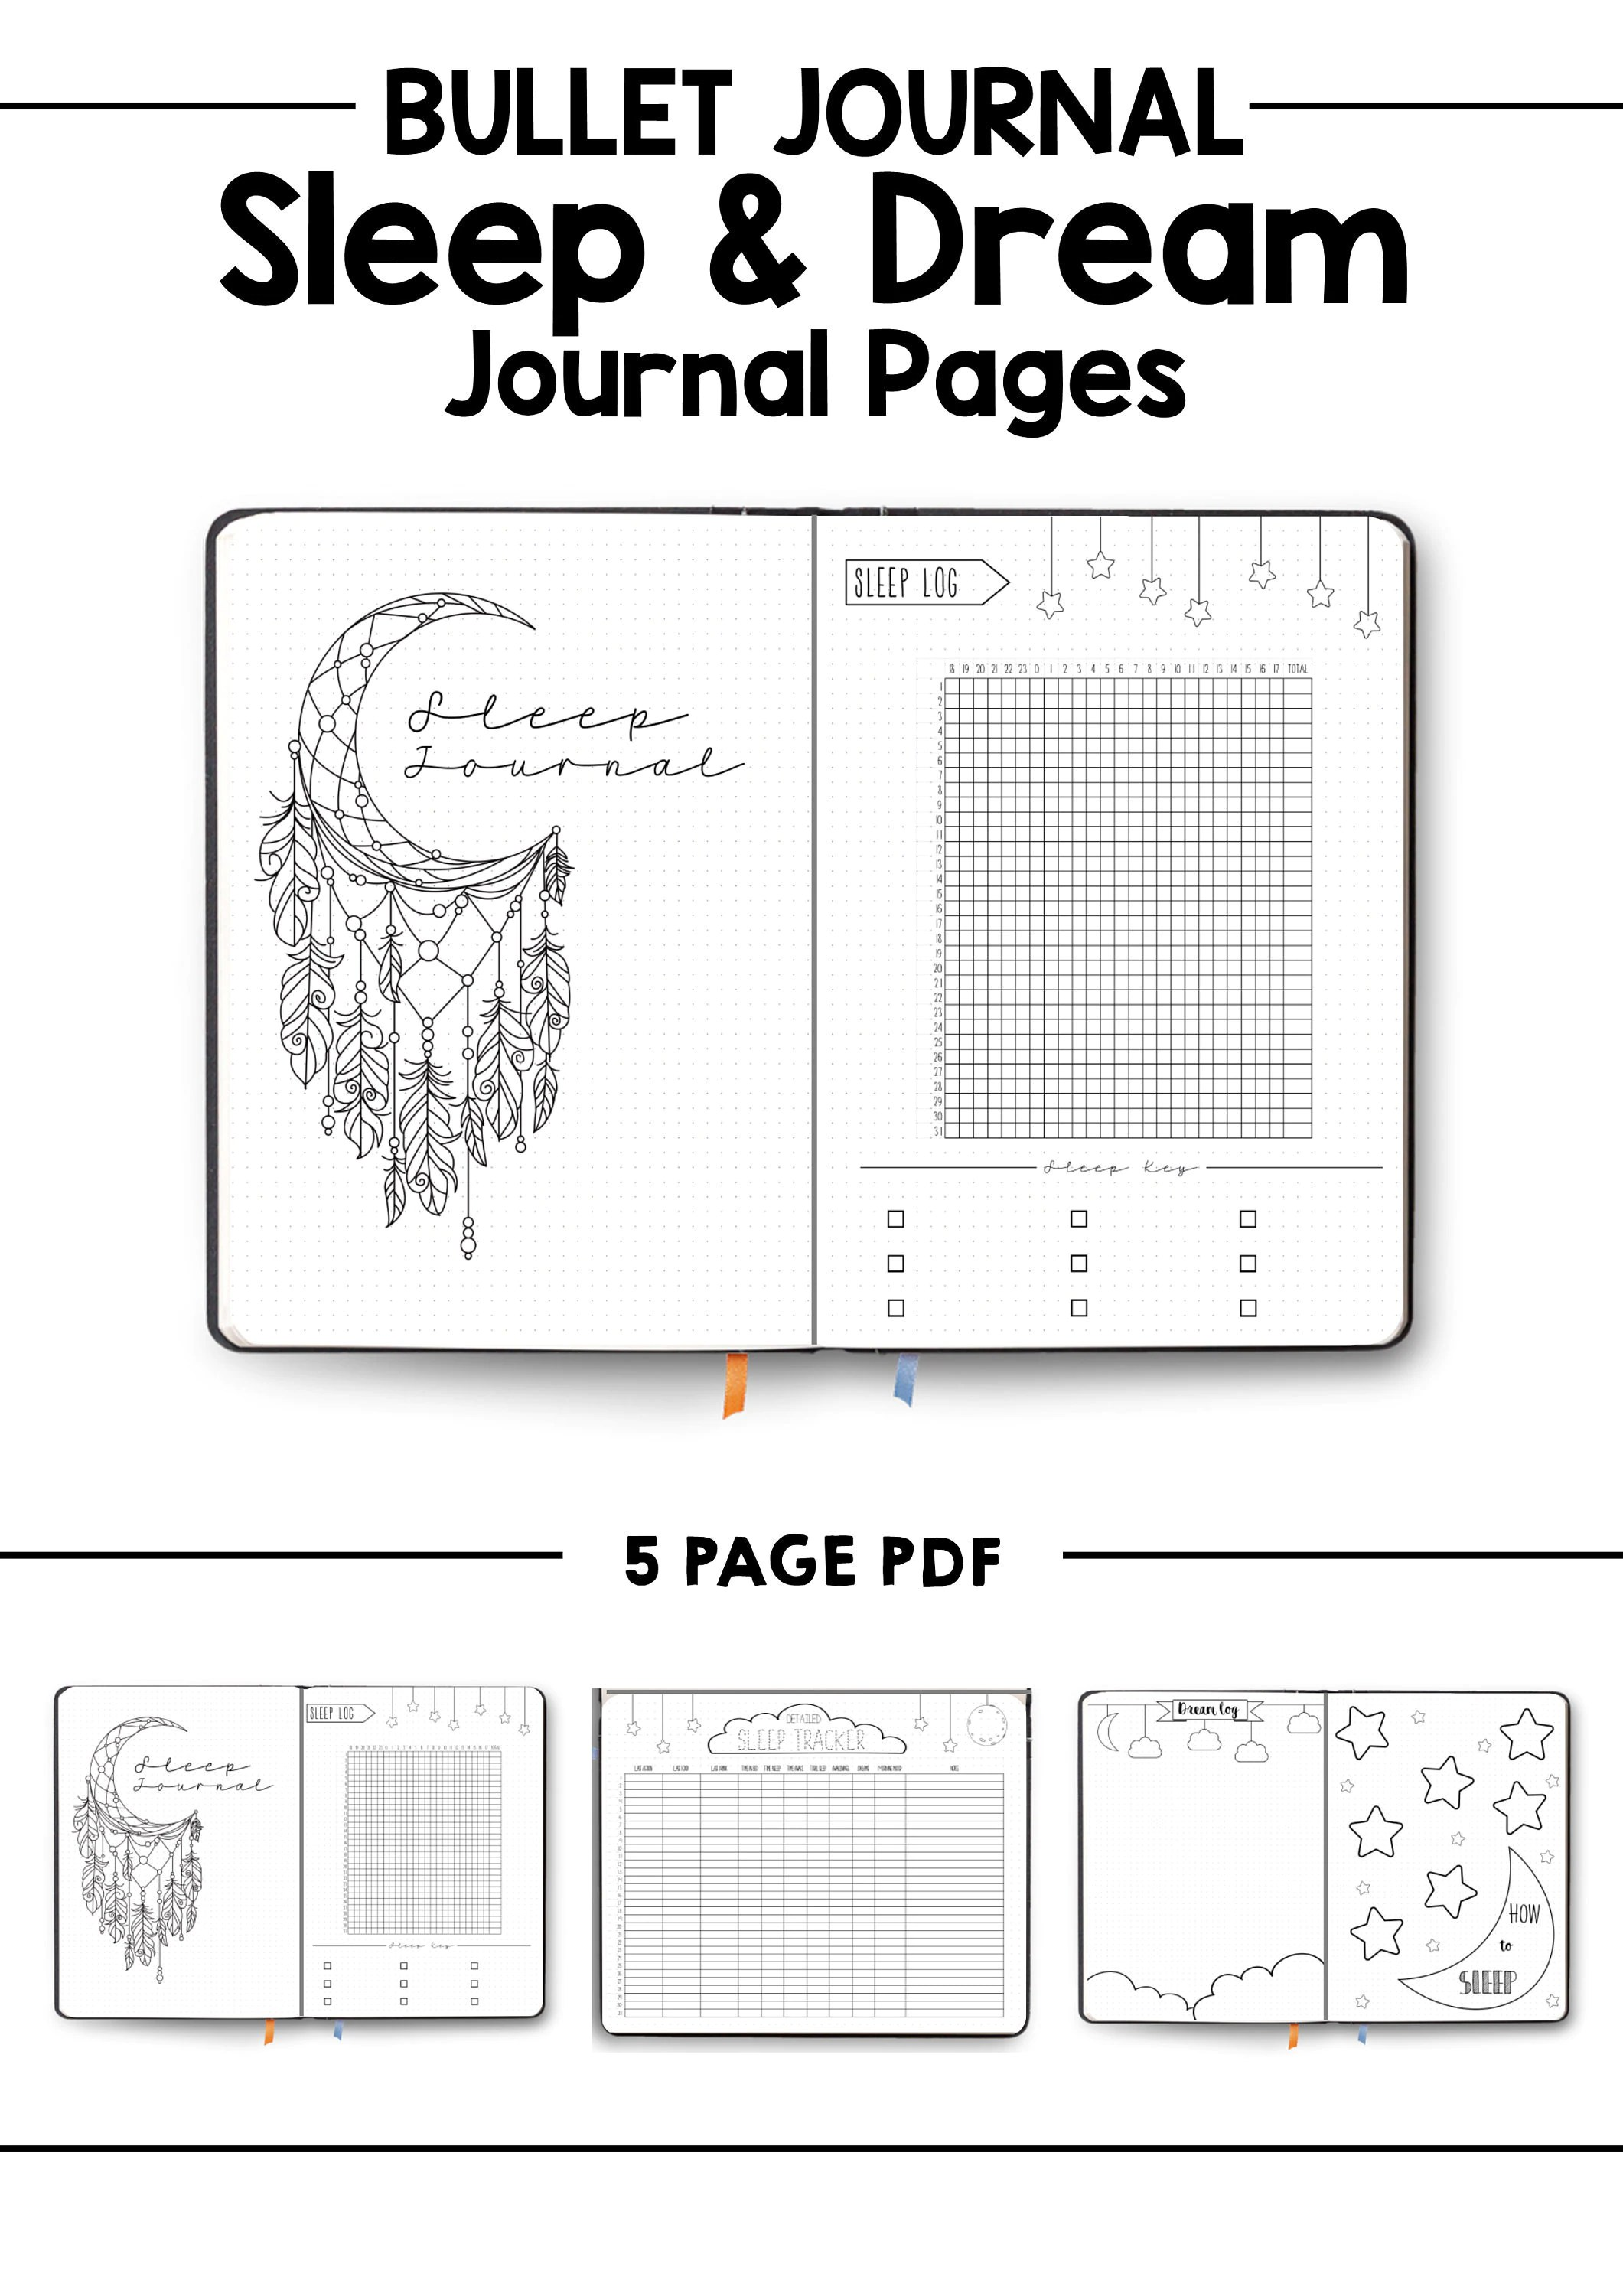 Sleep Journal Dream Log Bullet Journal Bujo Template